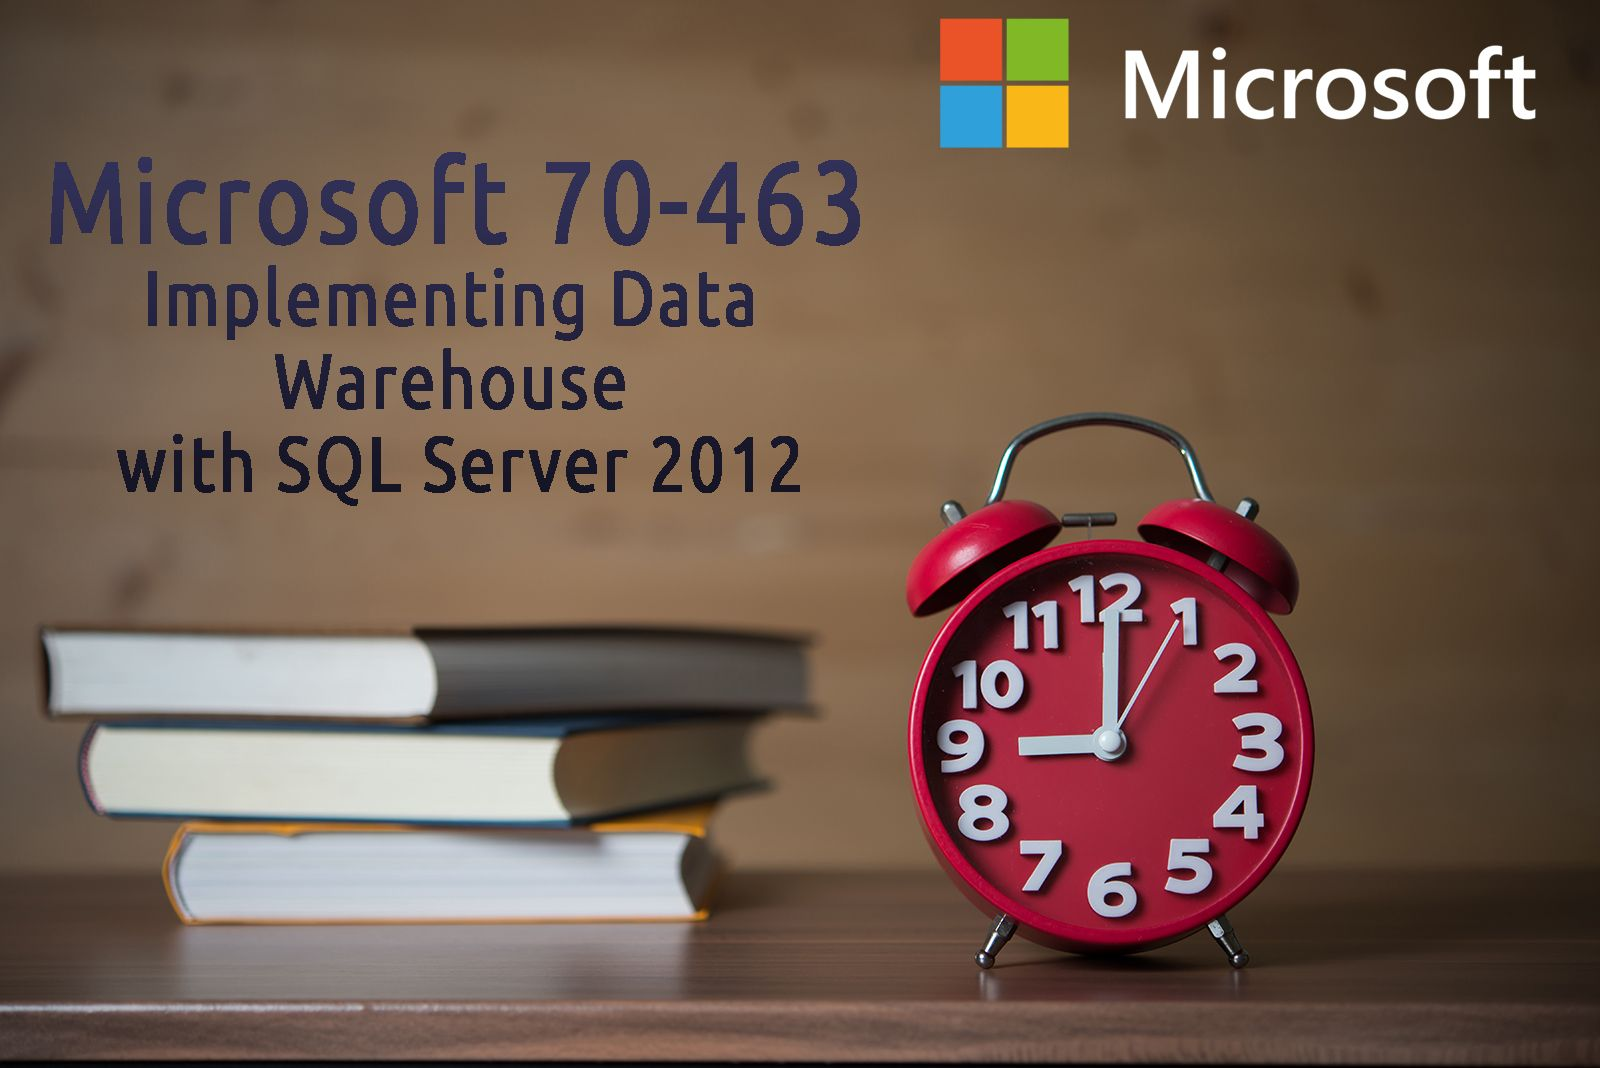 Microsoft 70-463 Implementing Data Warehouse with SQL Server 2012